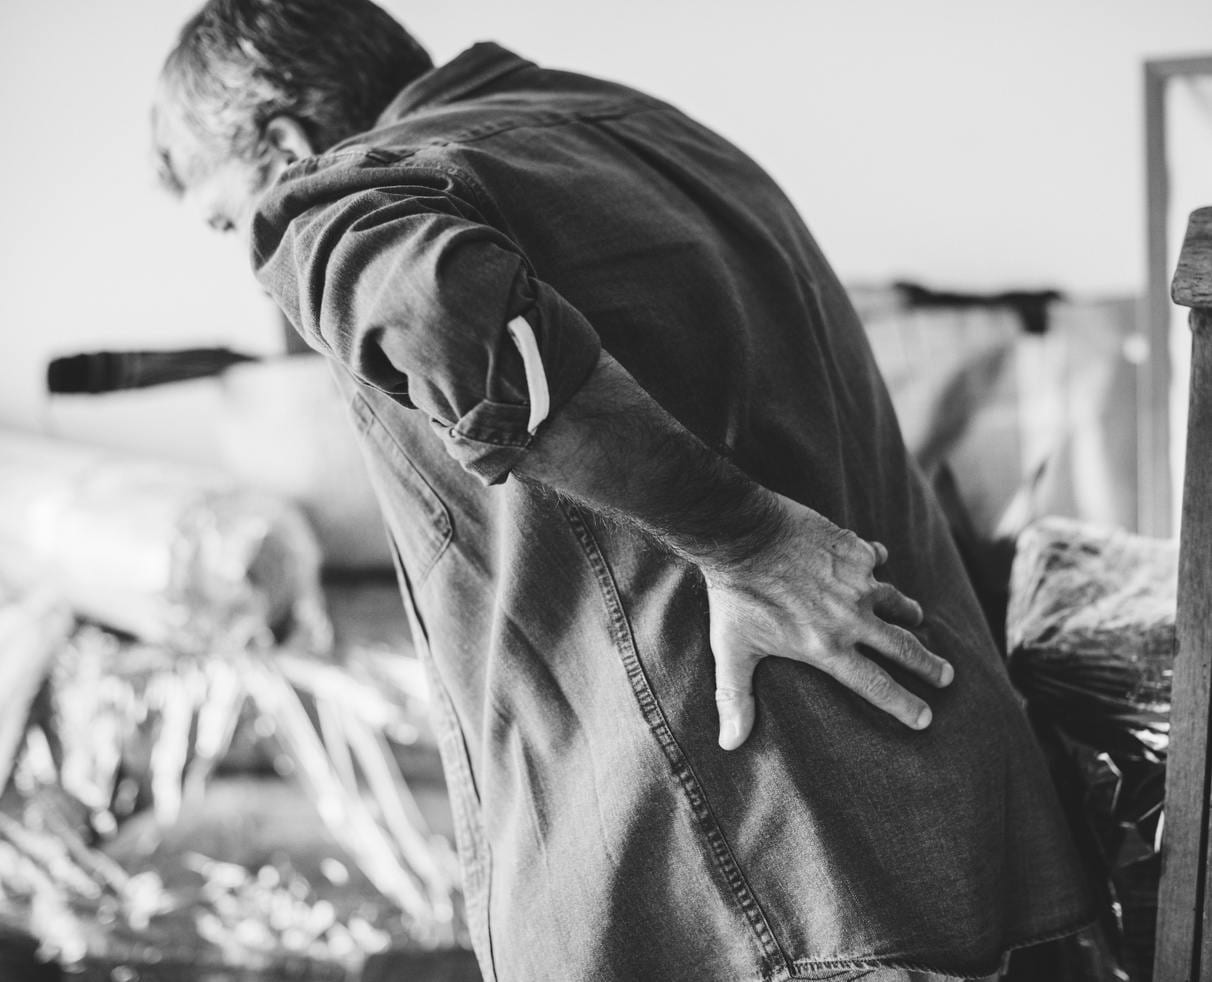 How long do I have to file a Back Injury Lawsuit?